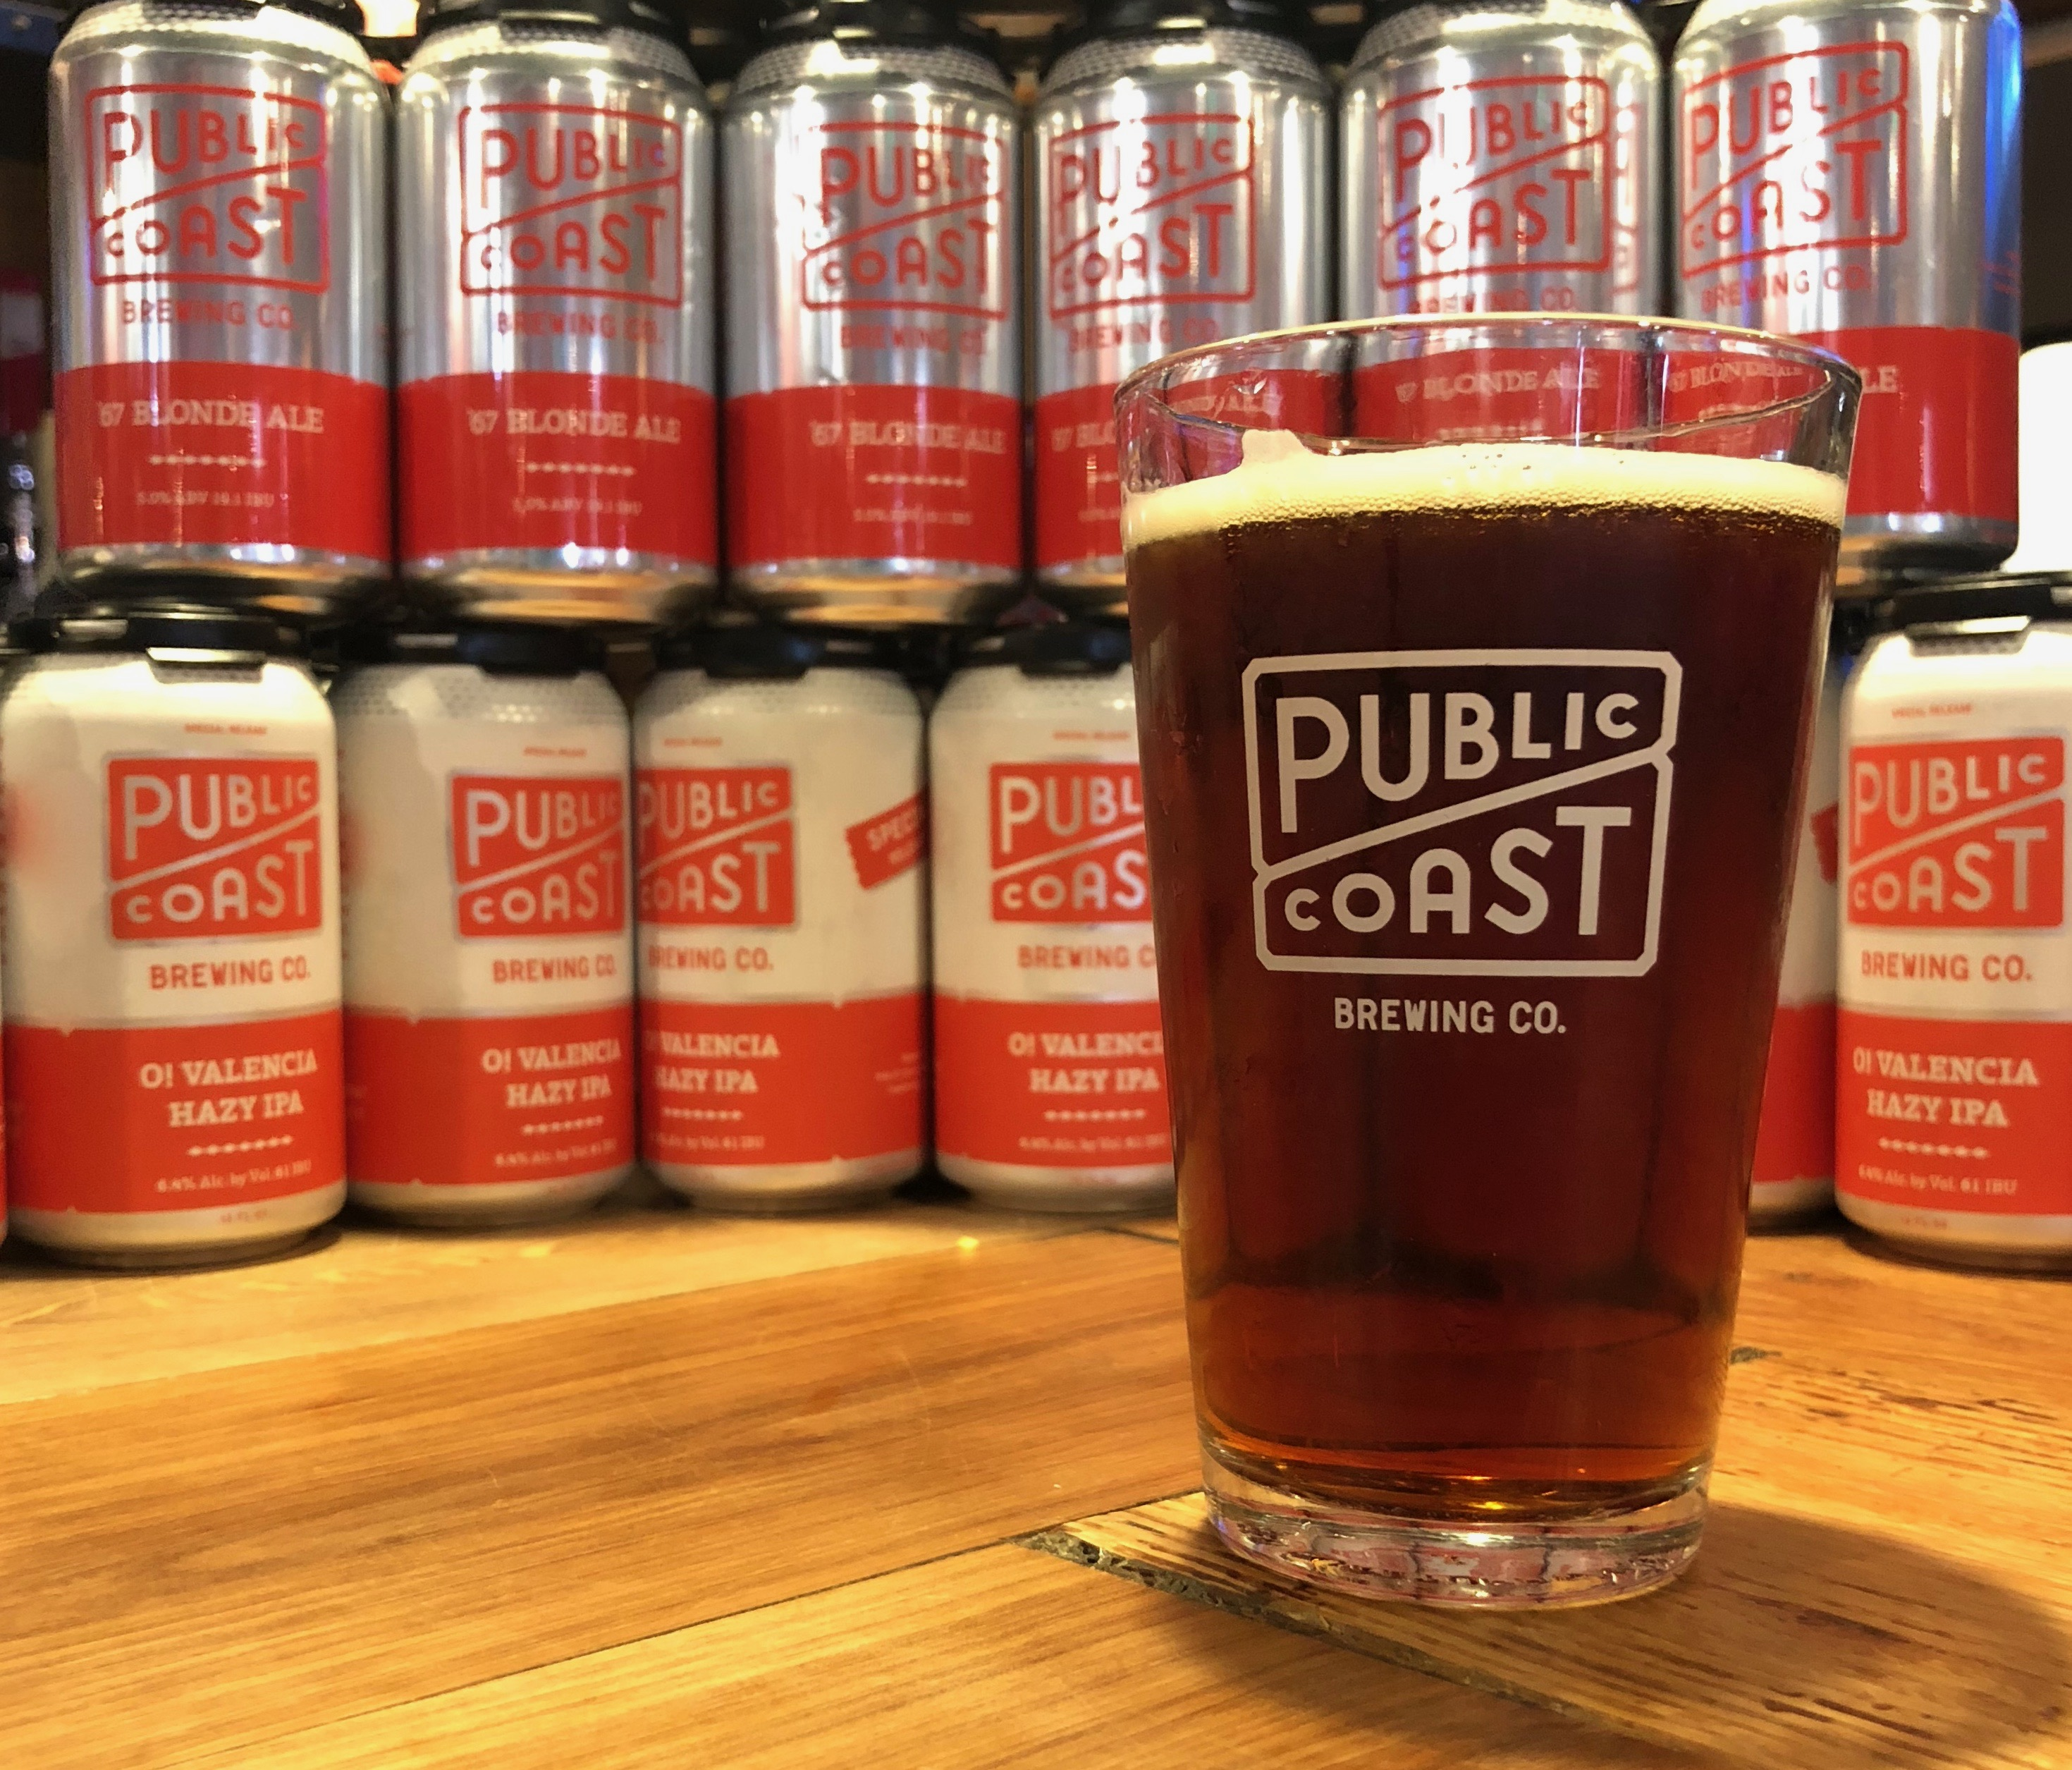 Public Coast Brewing offers an assortment of its beers in cans.